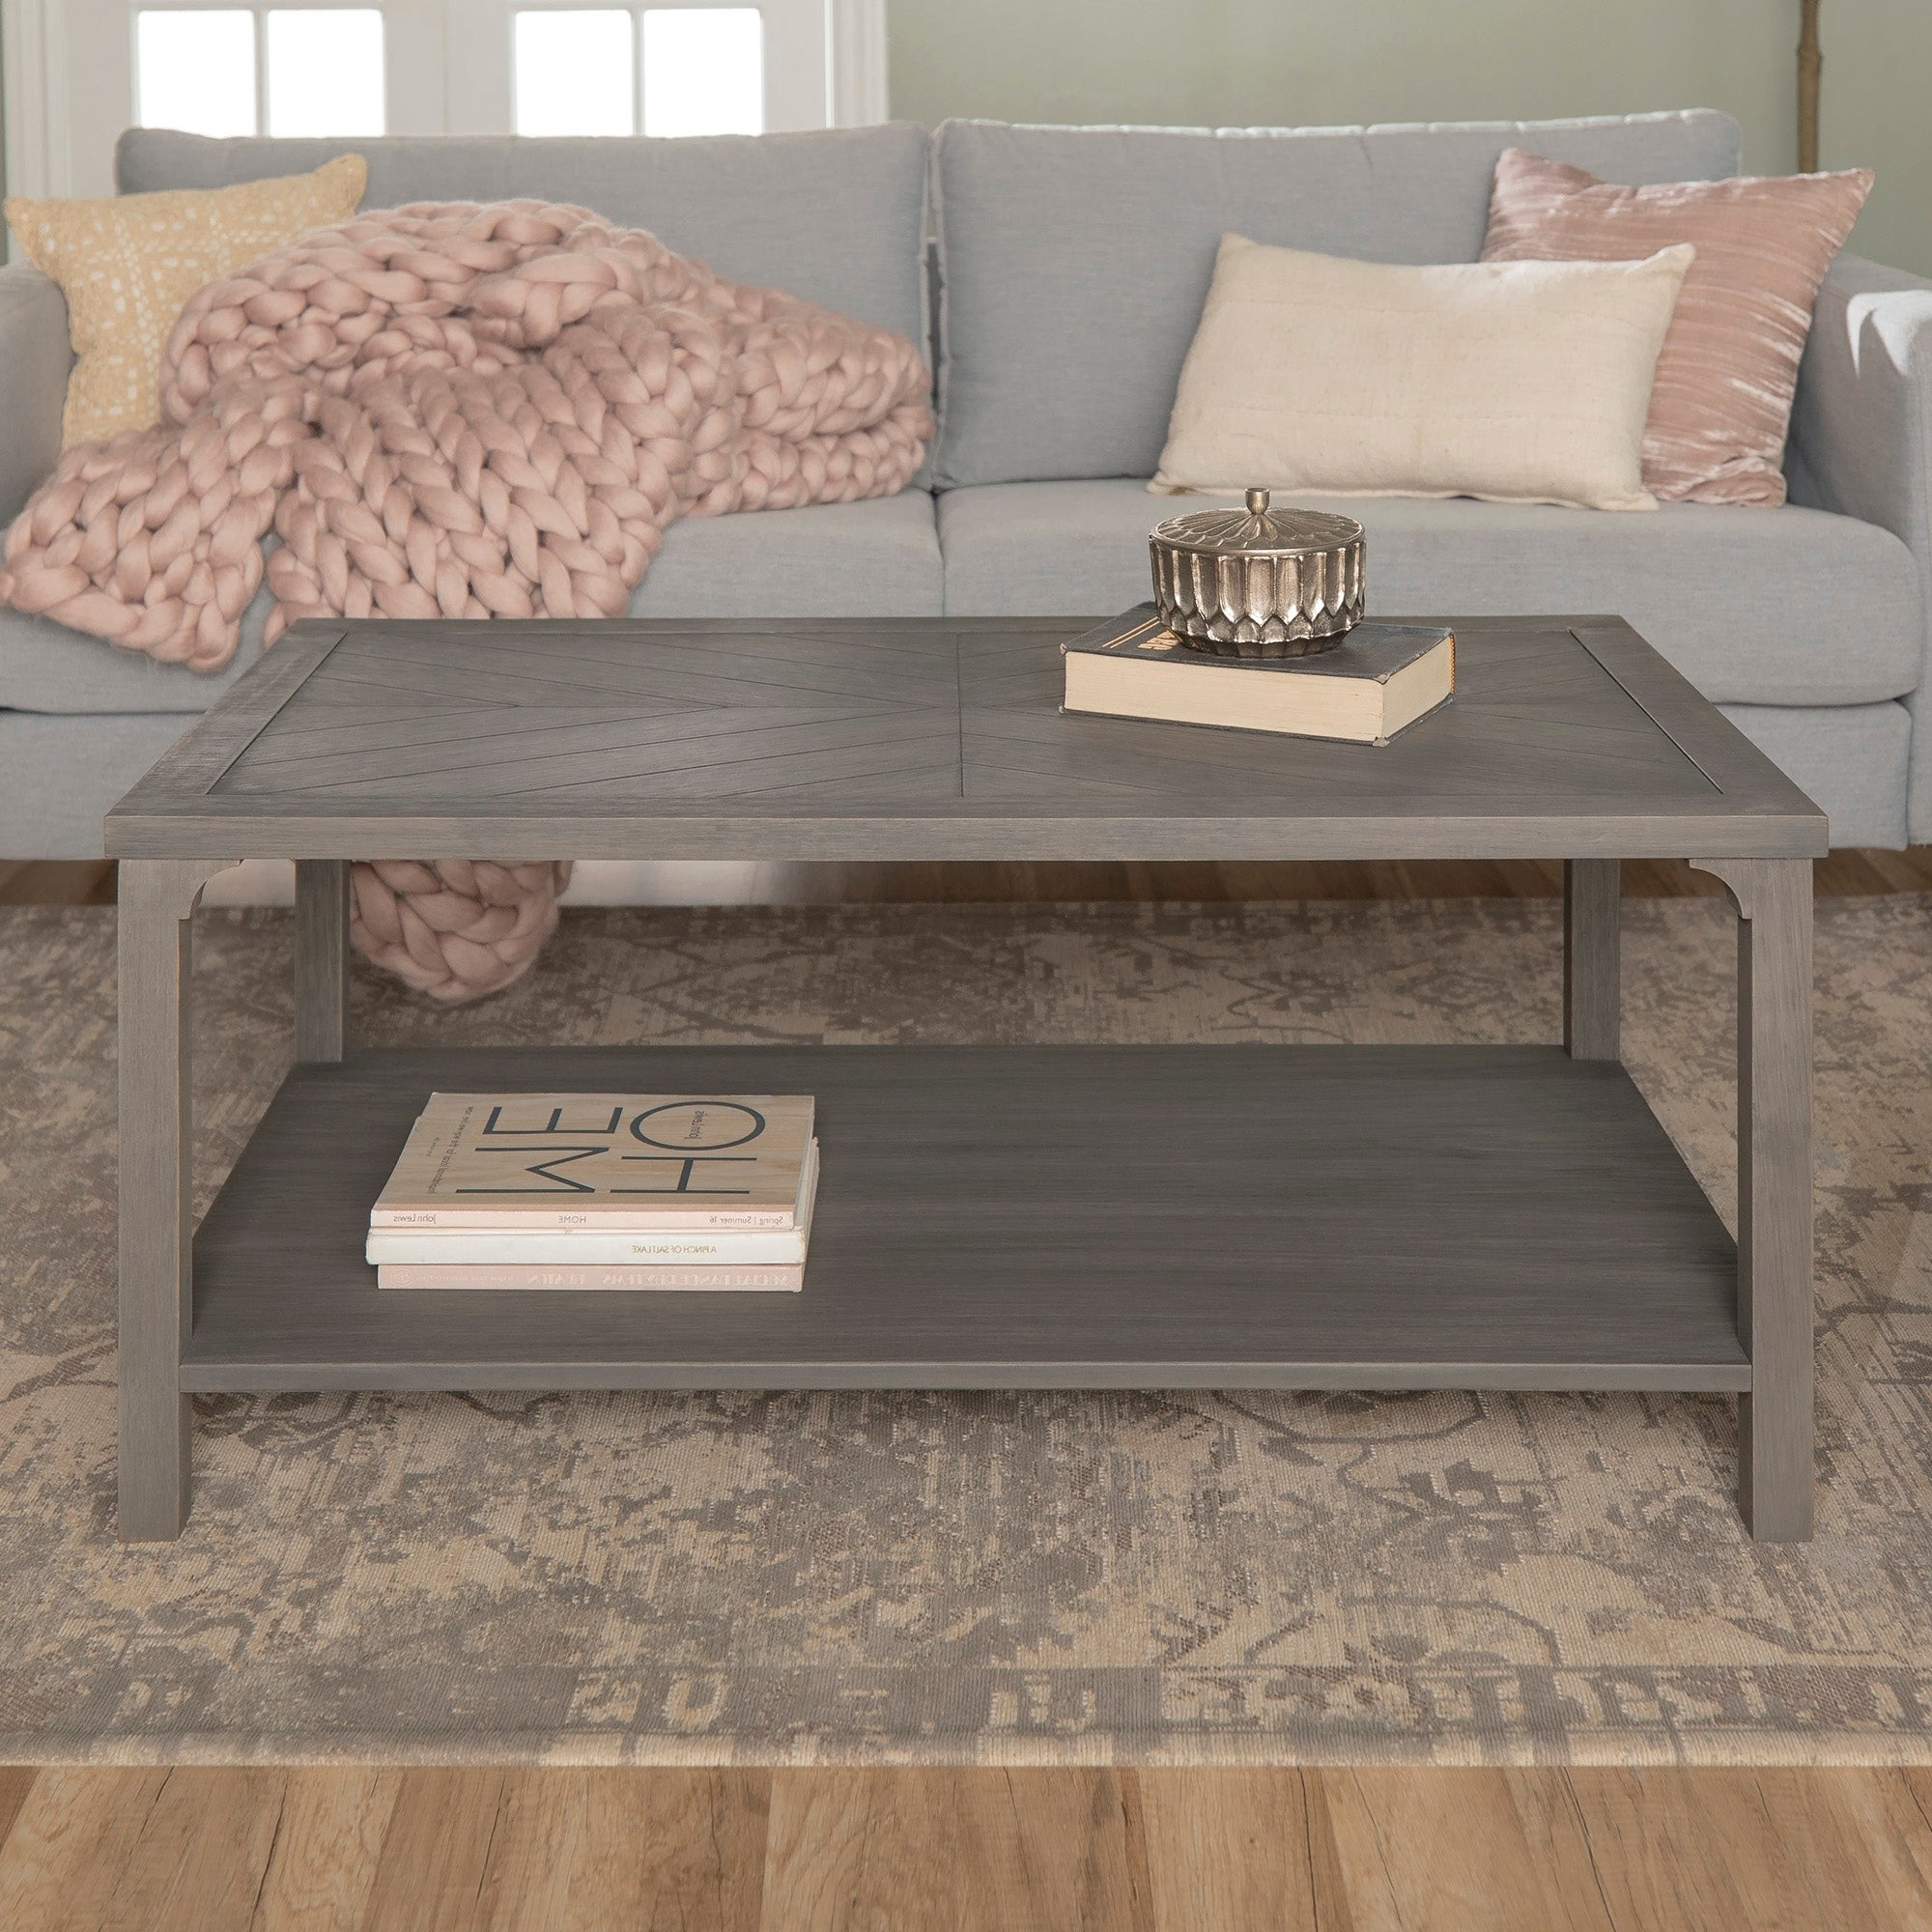 Most Current The Gray Barn Kujawa Metal X Coffee Tables – 40 X 22 X 18h Within The Gray Barn Kujawa Chevron Coffee Table – 42 X 24 X 18h (View 14 of 20)